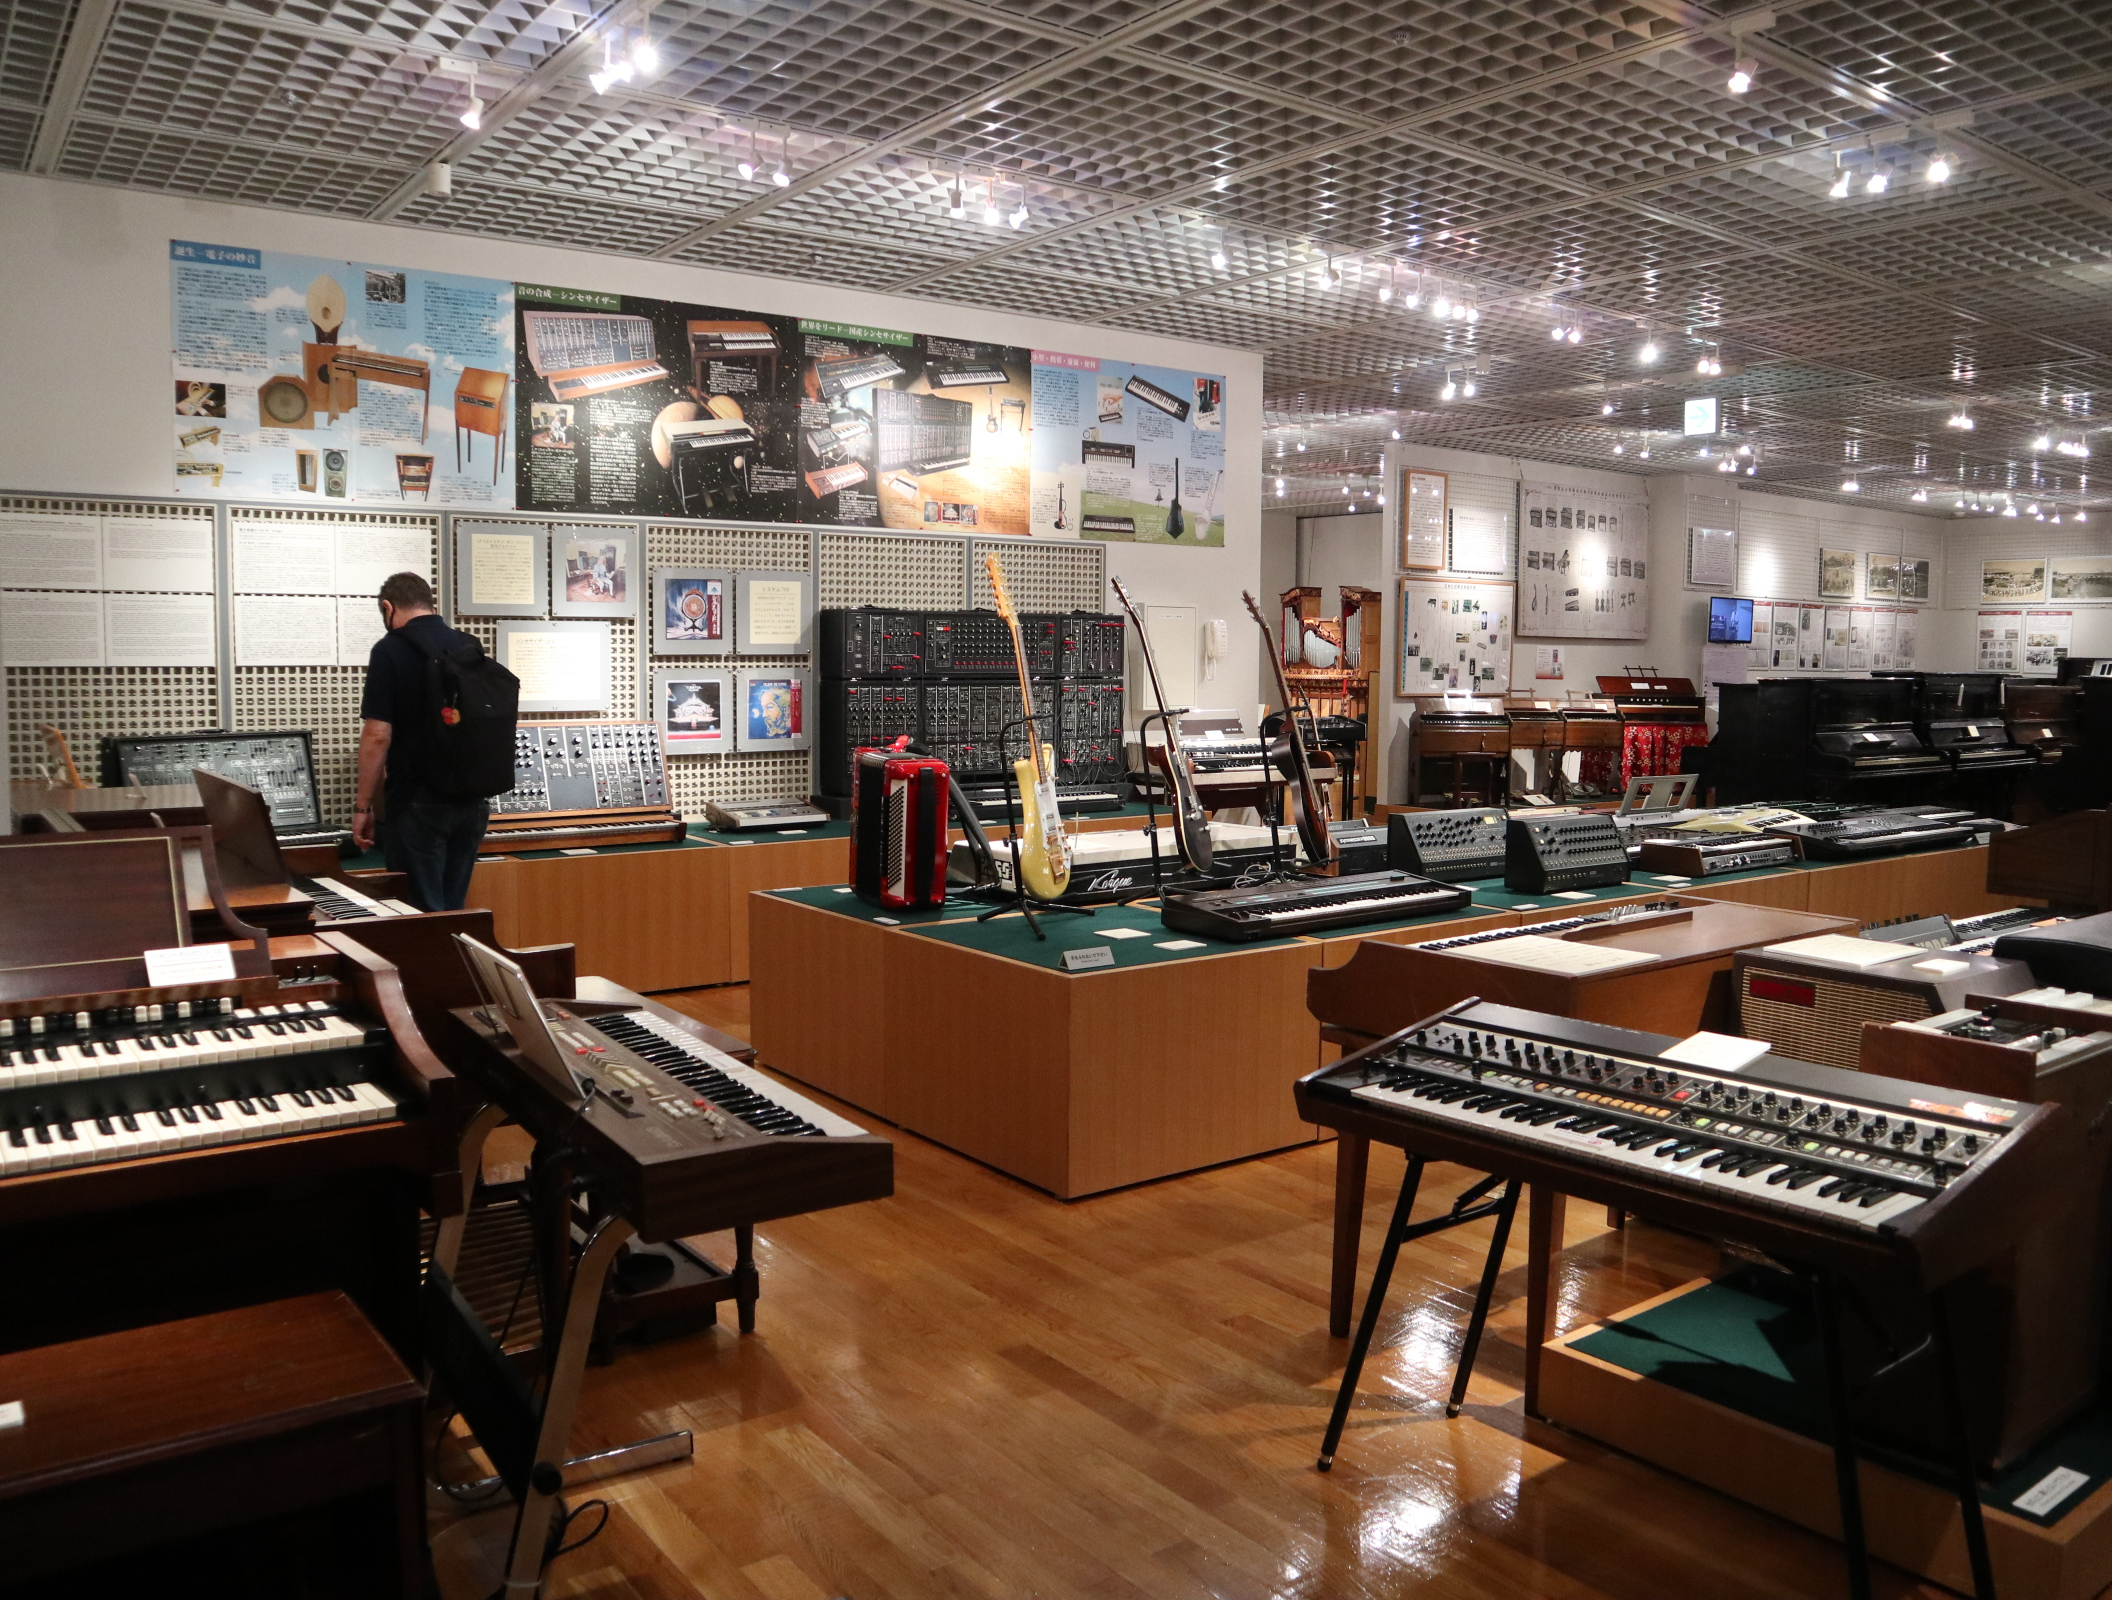 Collection of electronic instruments